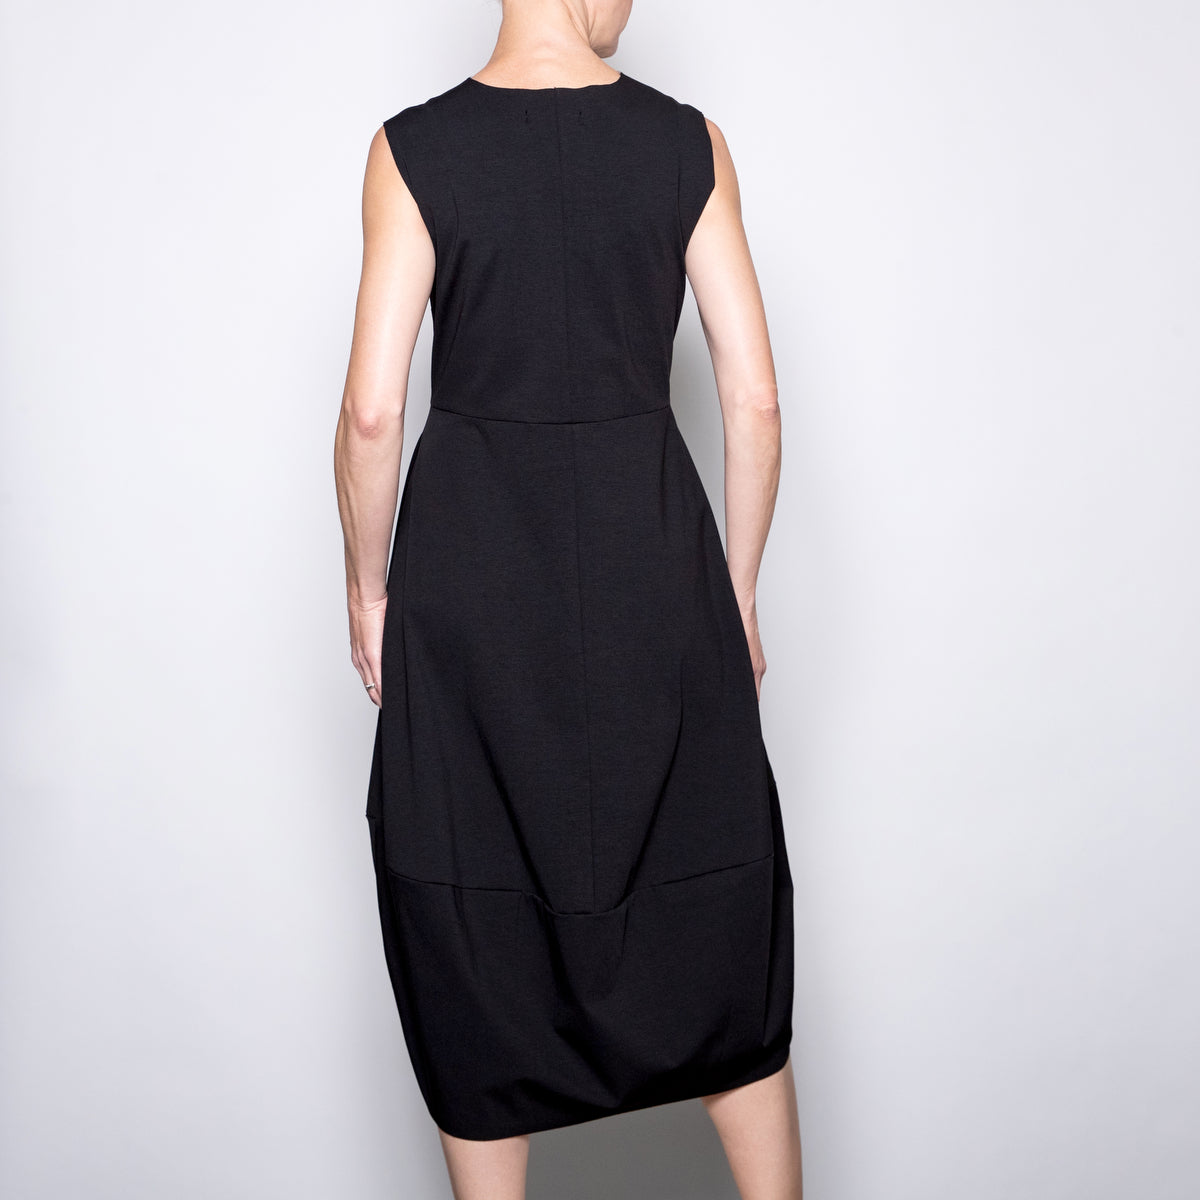 Baci Panelled Neoprene Dress